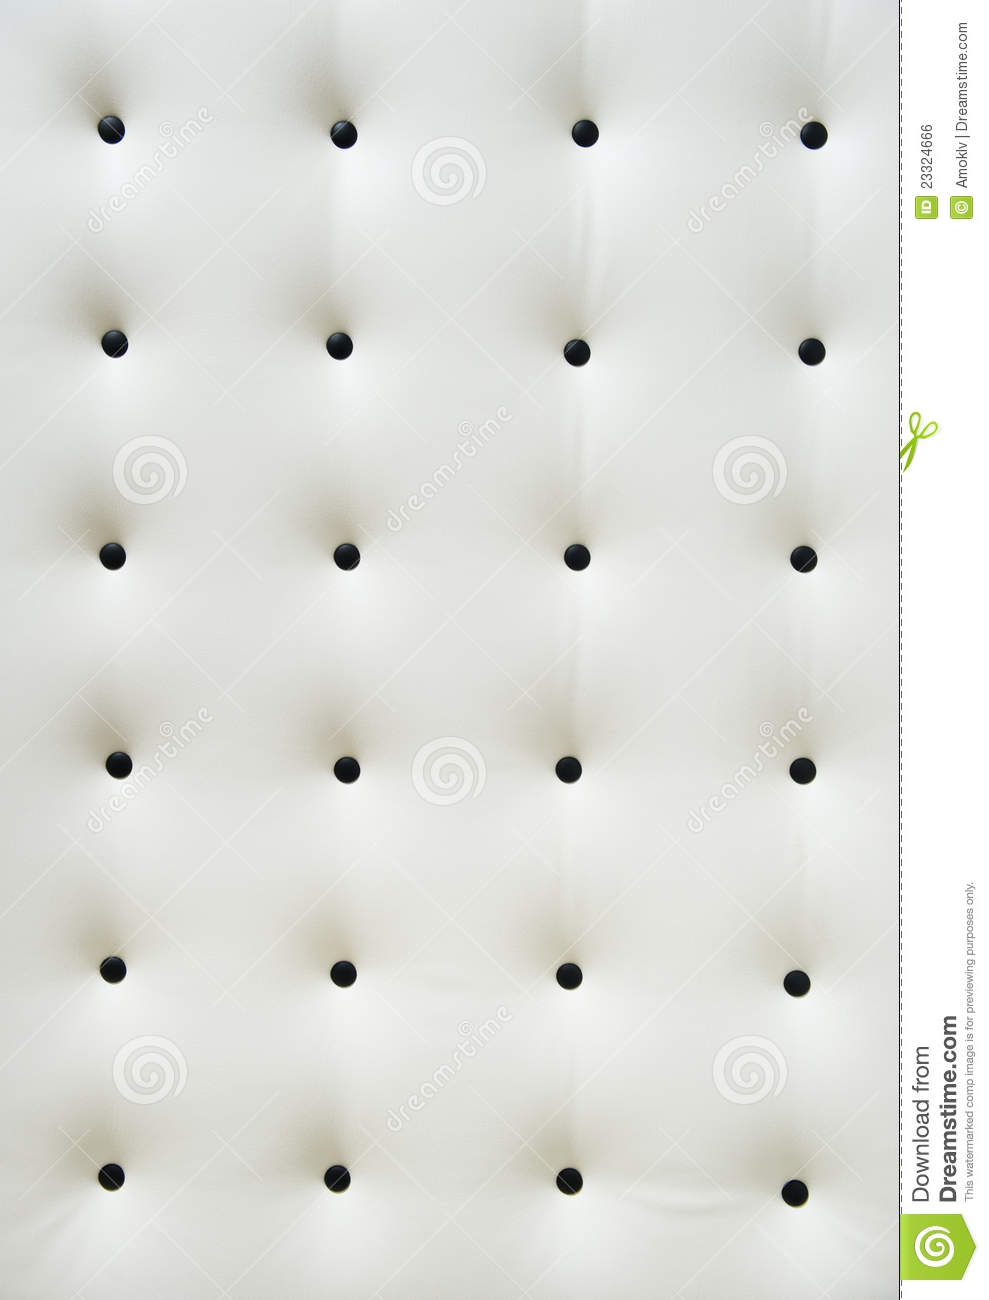 White Leather Upholstery With Black Buttons Stock Photo